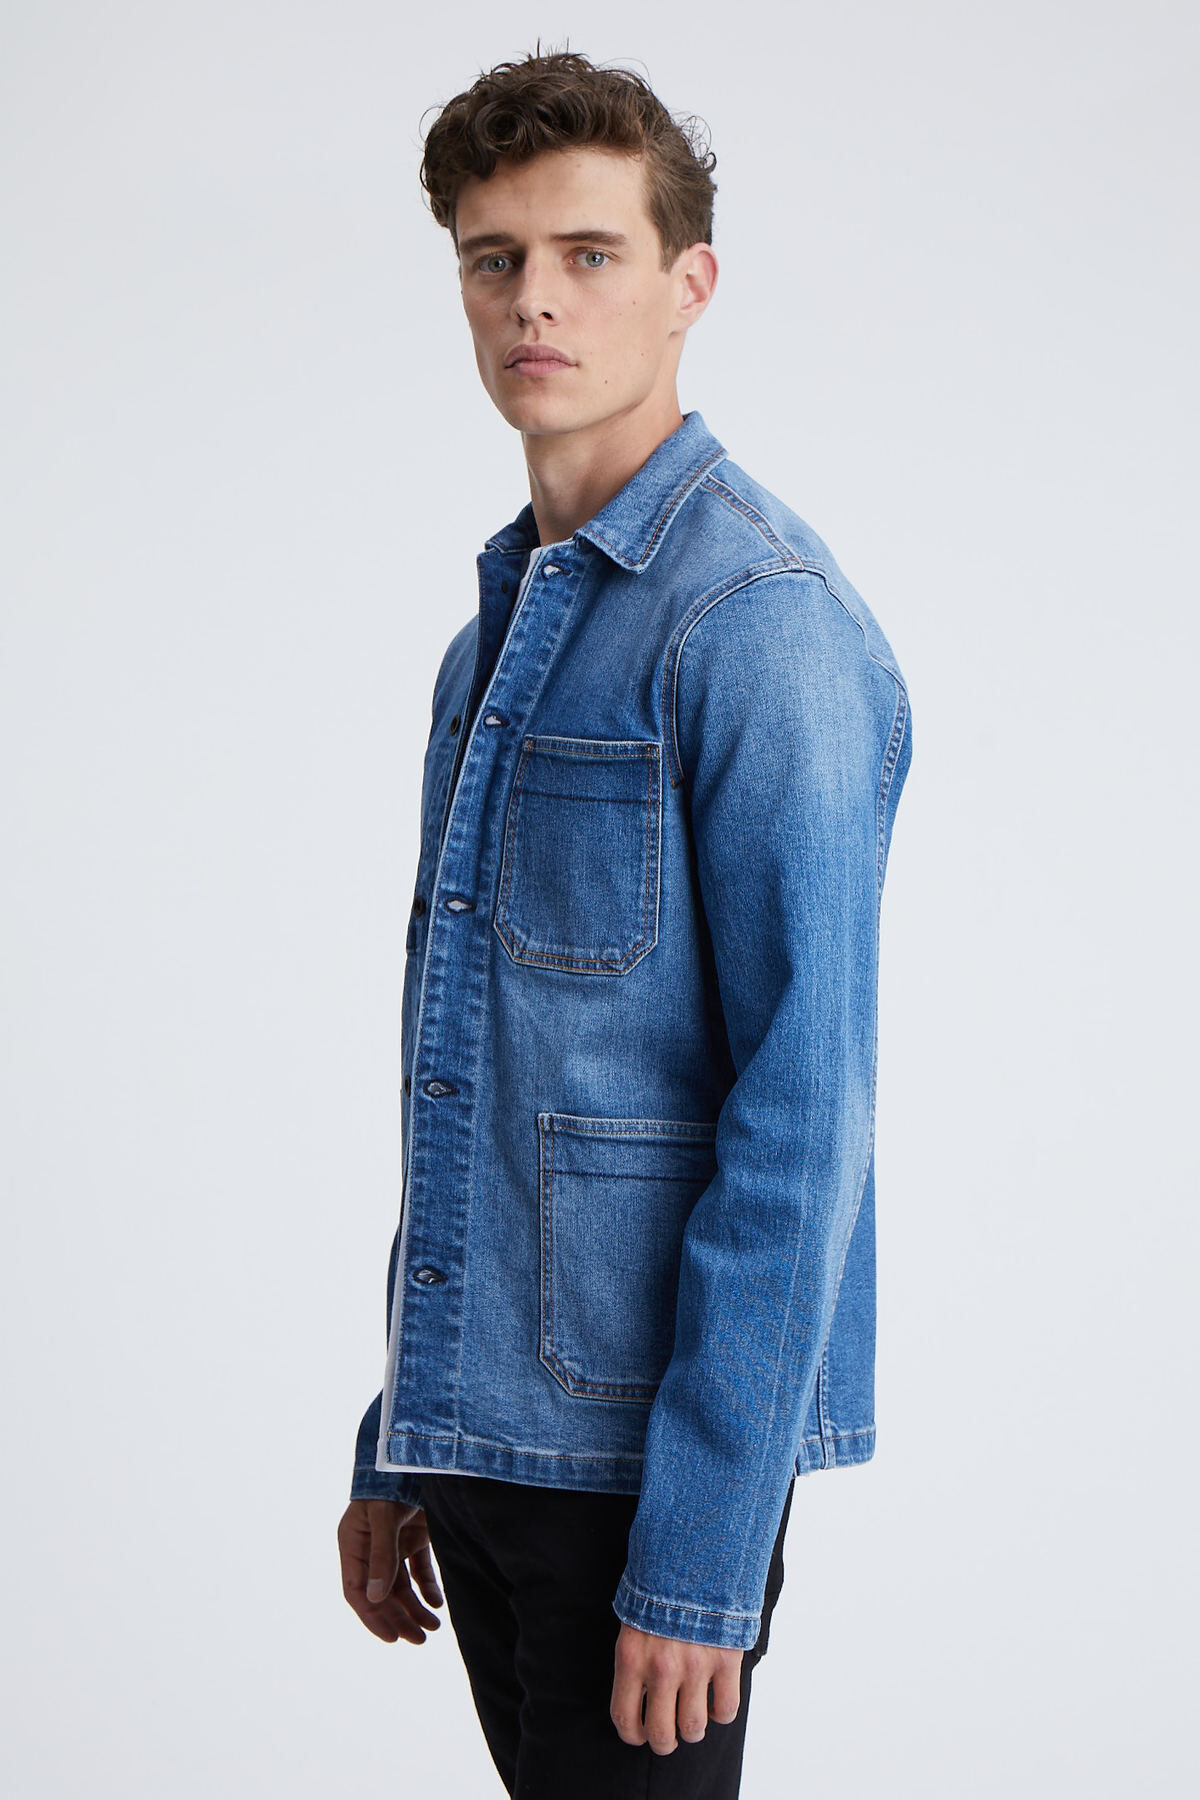 MAO JACKET Indigo Stretch Denim - Slim Fit